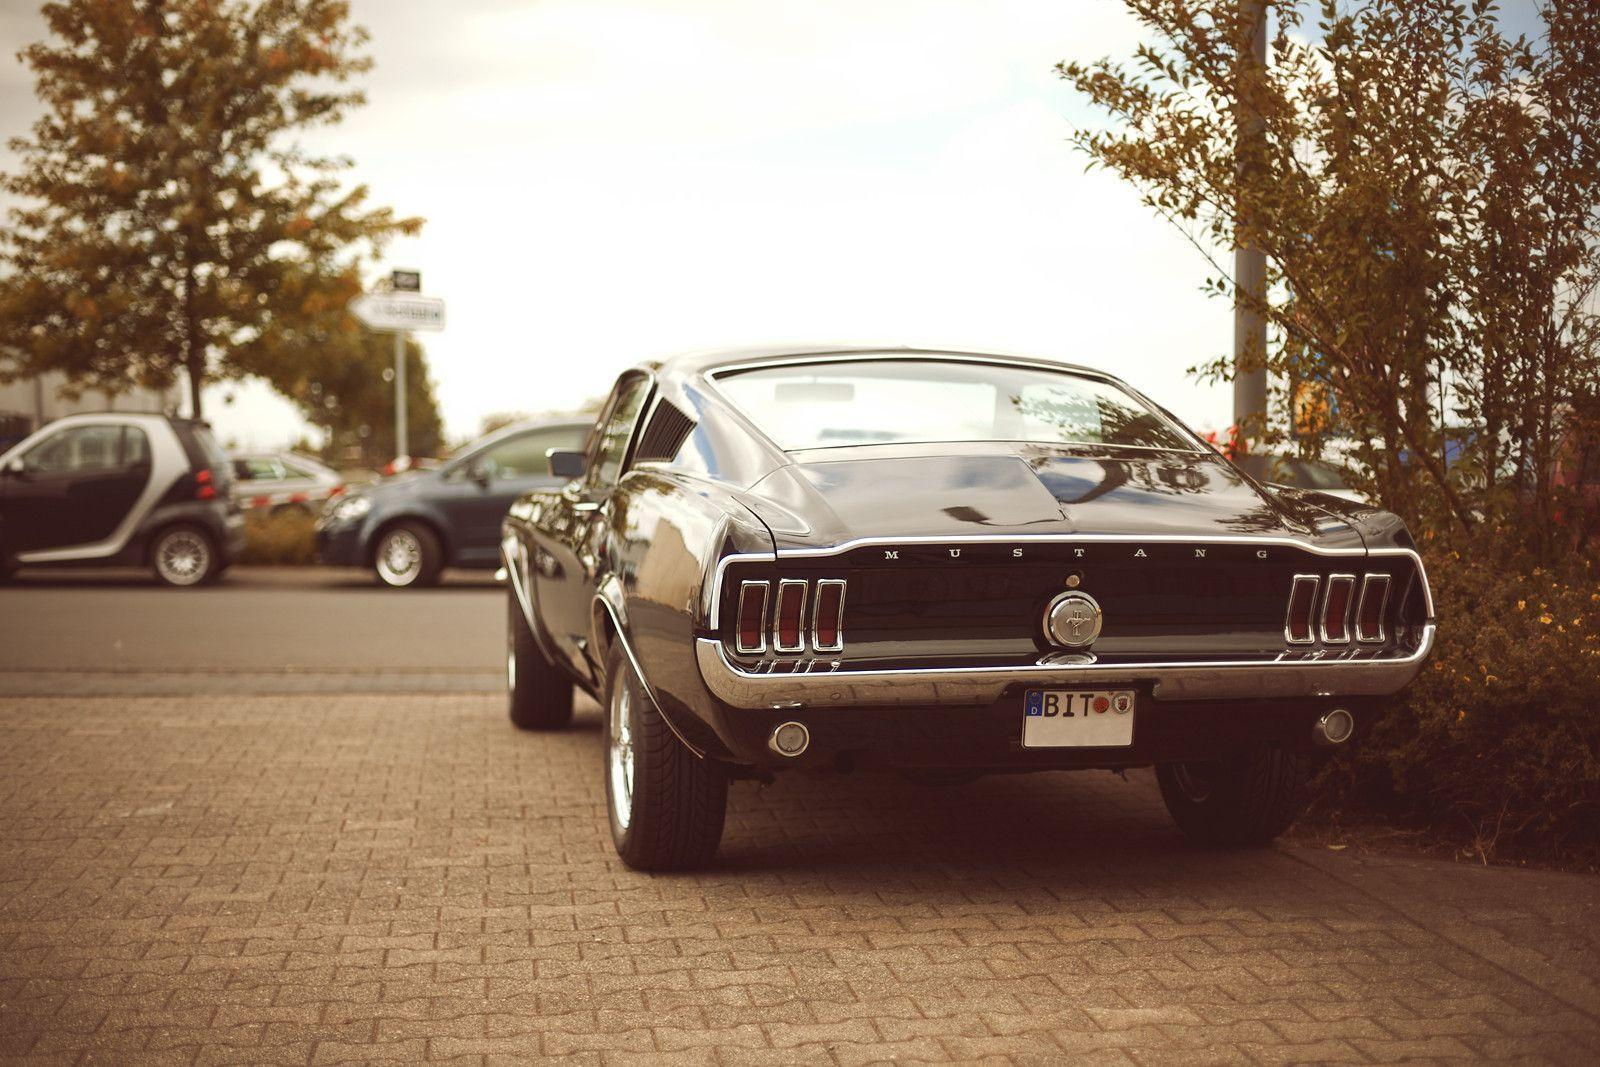 1967 ford mustang eleanor holy drift hd car wallpapers and videos - 1967 Ford Mustang Eleanor